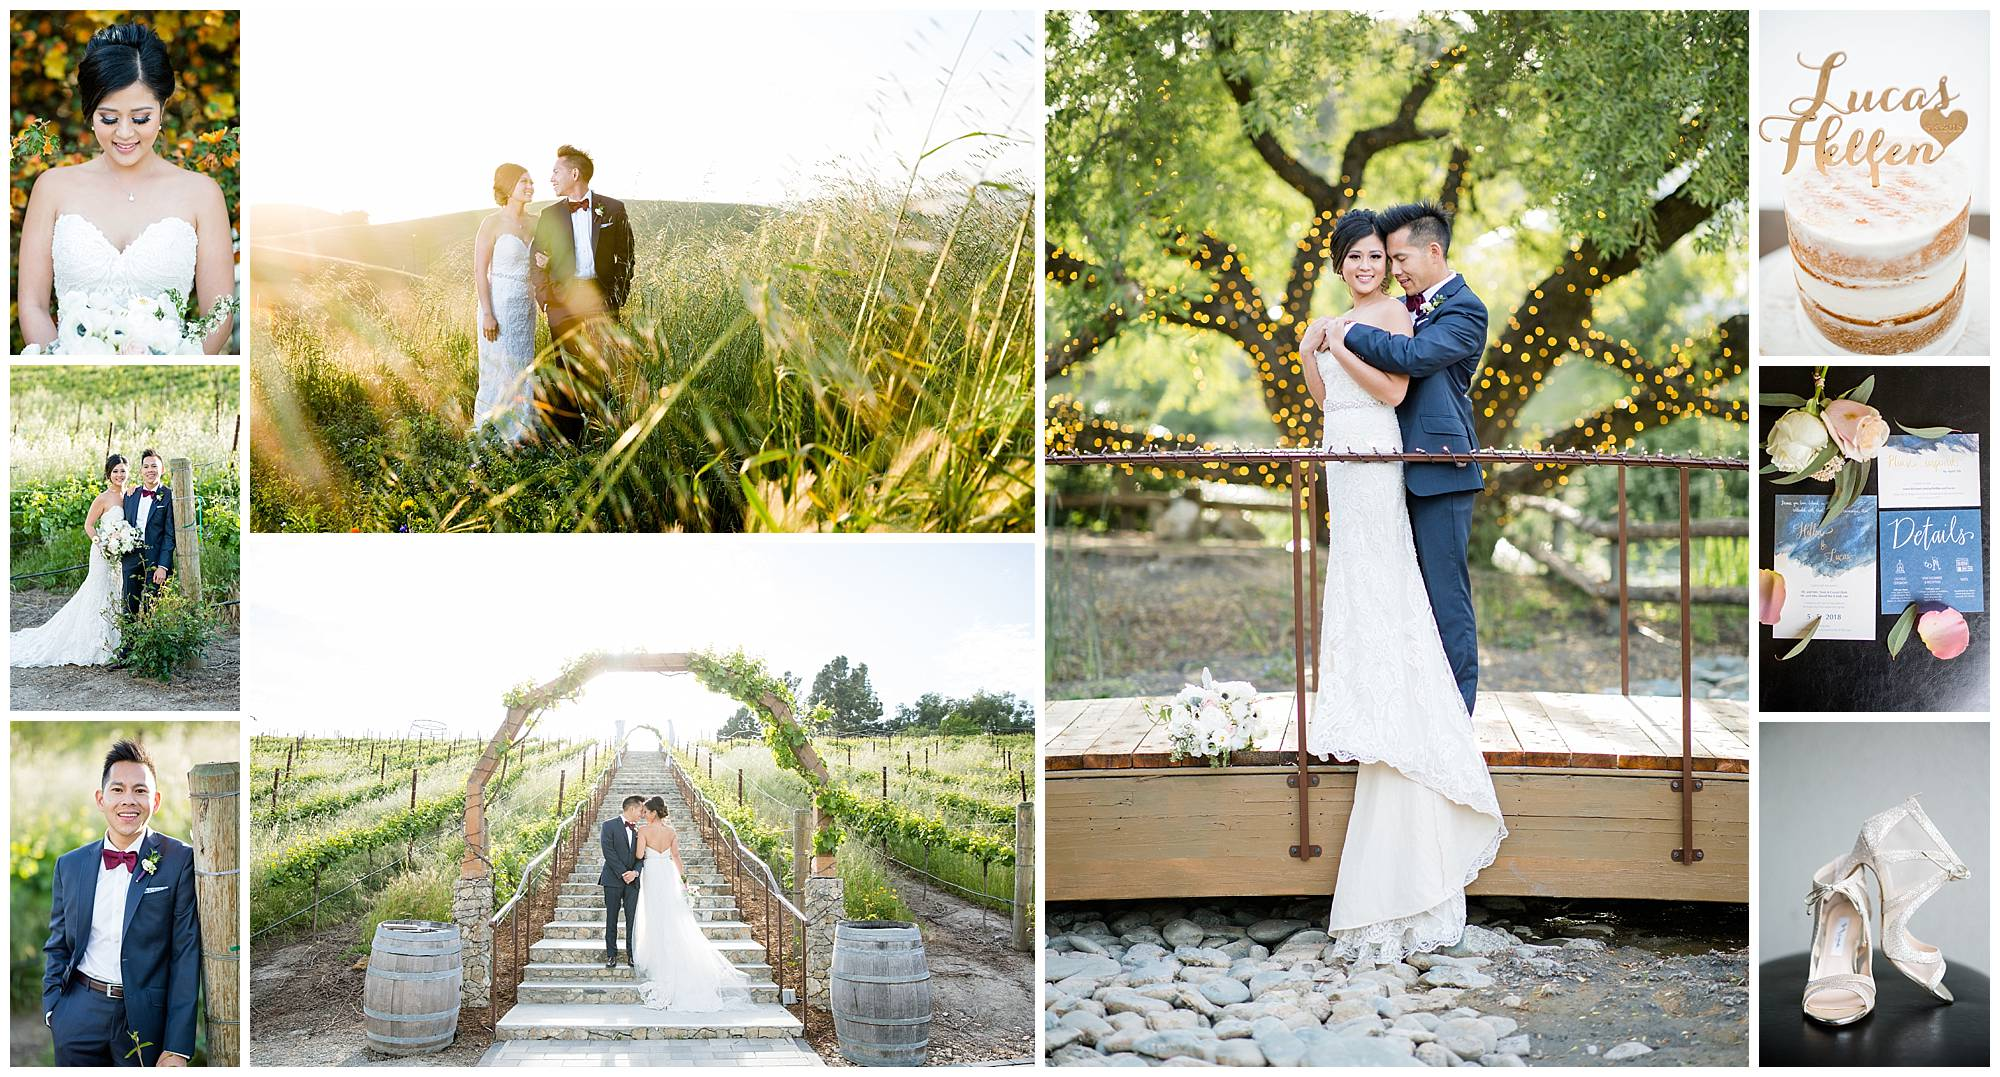 Collage of photos from Hellen and Lucas' wedding at Nella Terra